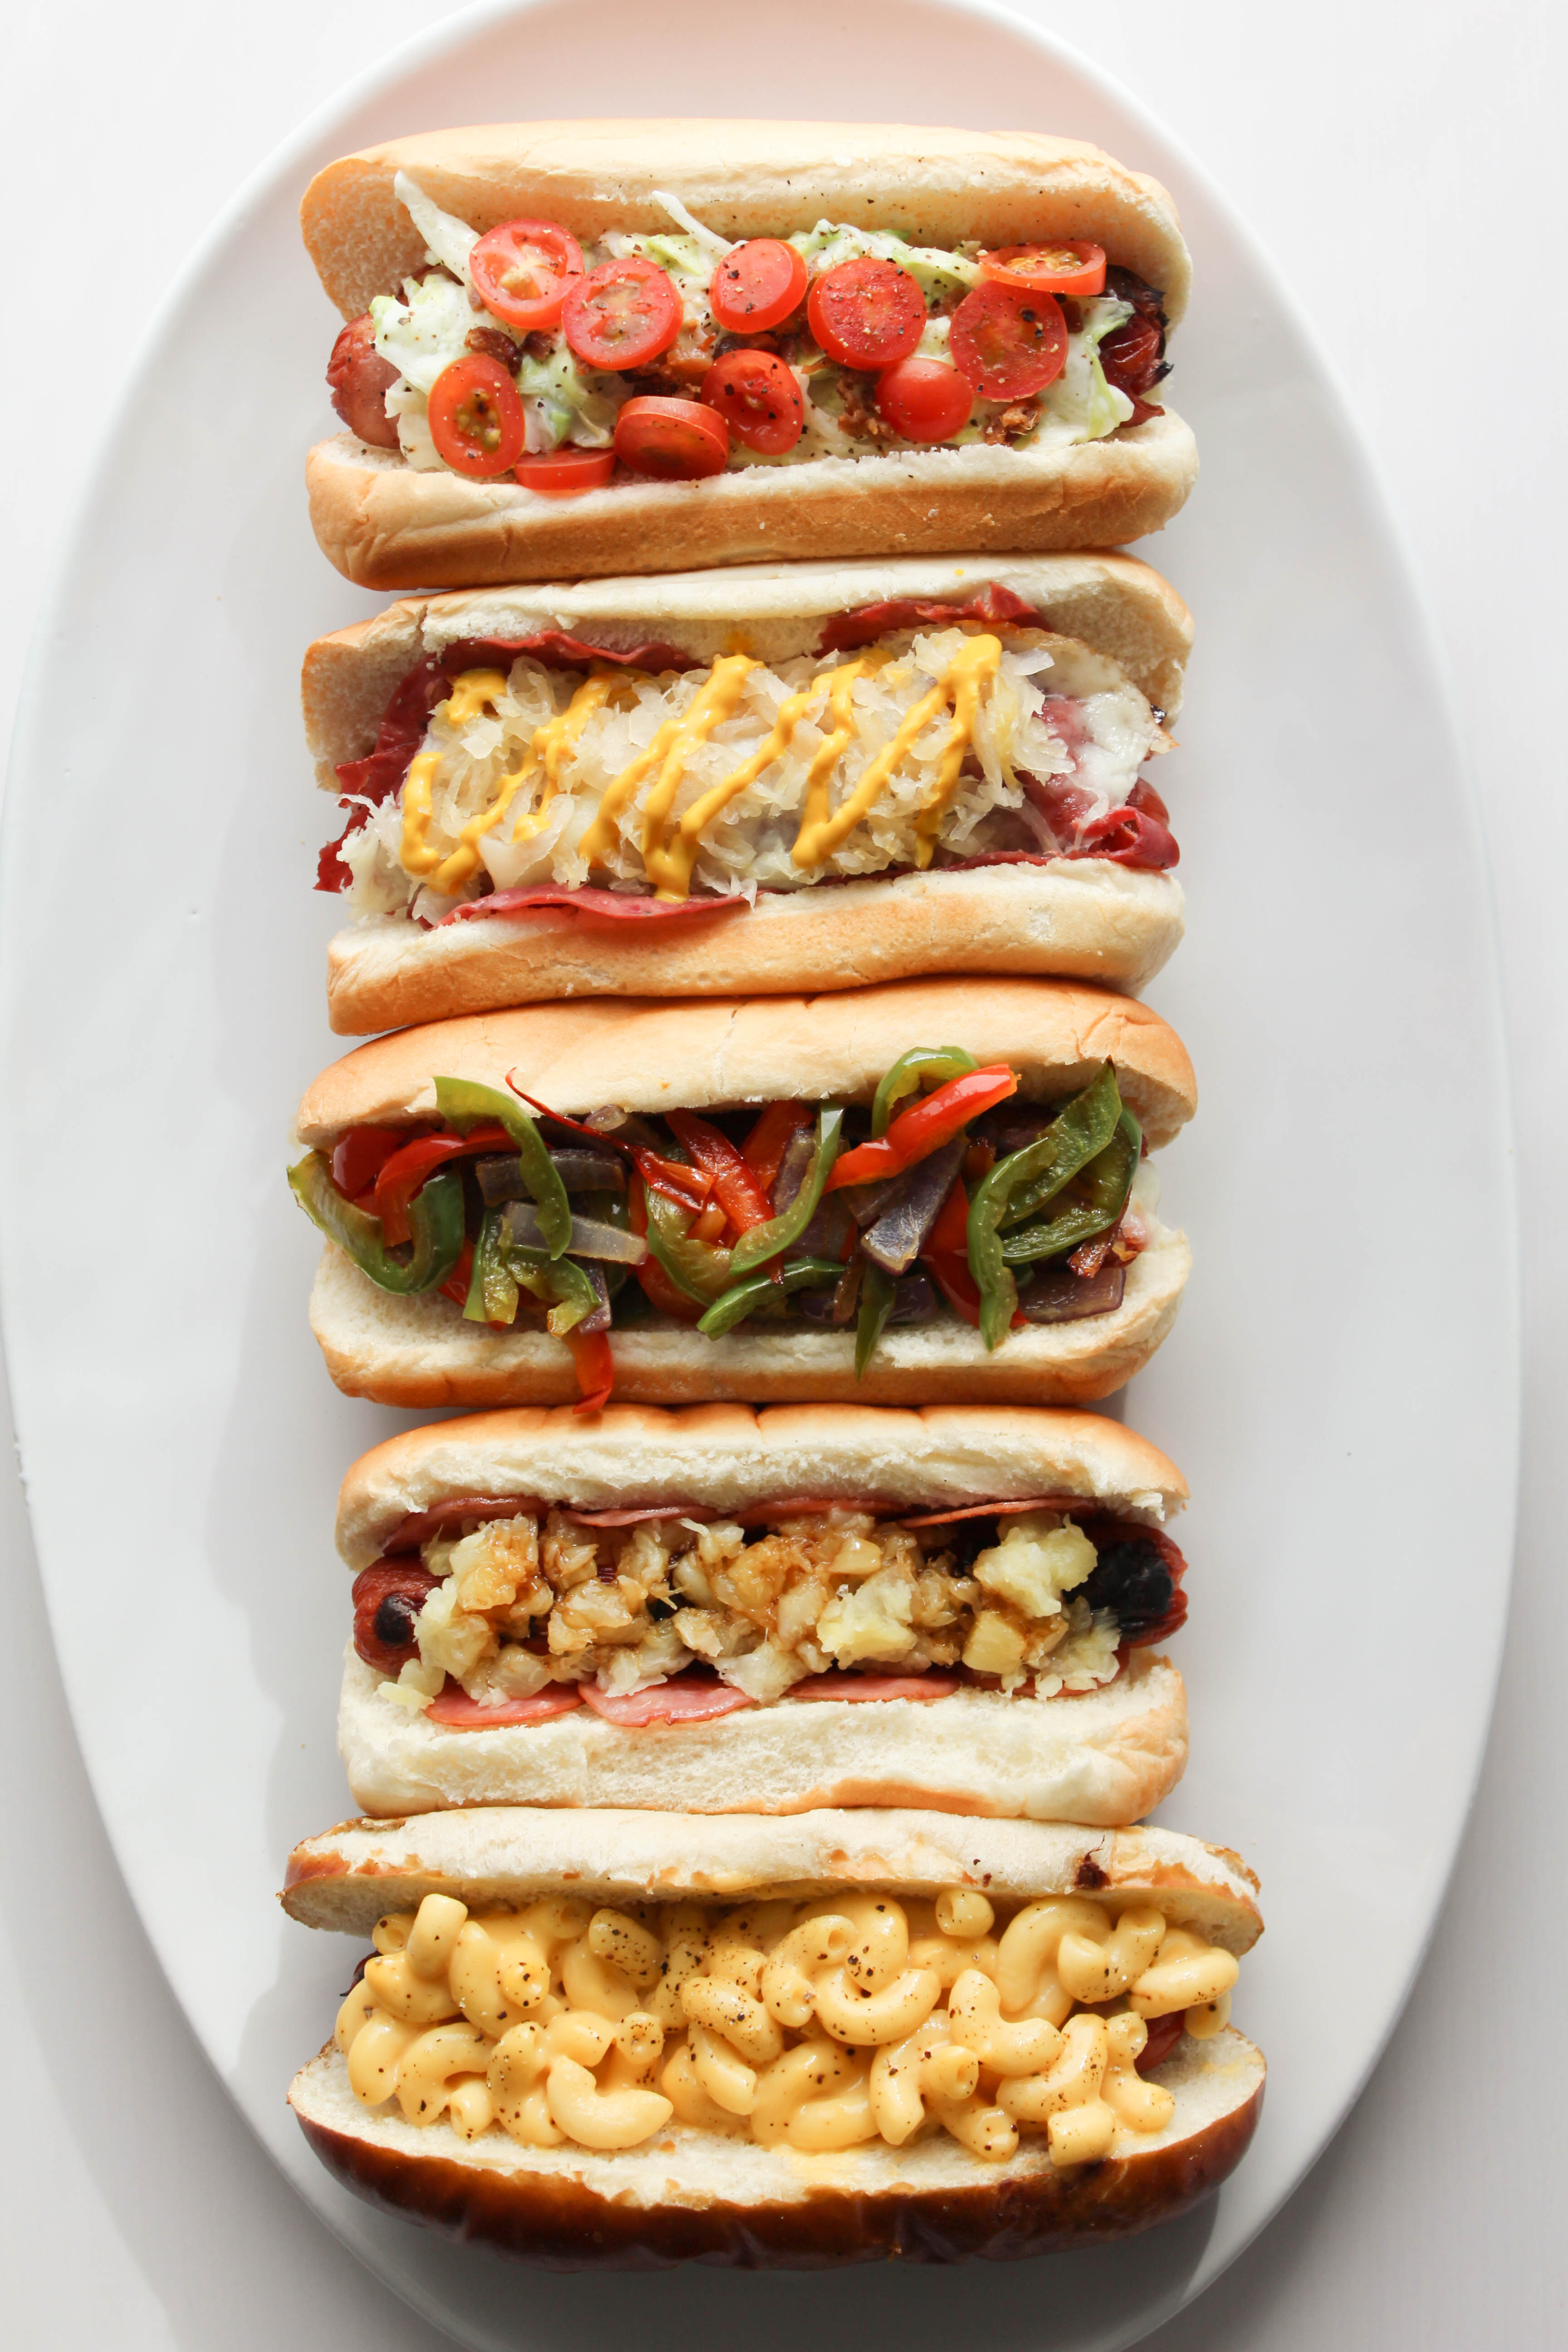 Traditional Hot Dog Toppings